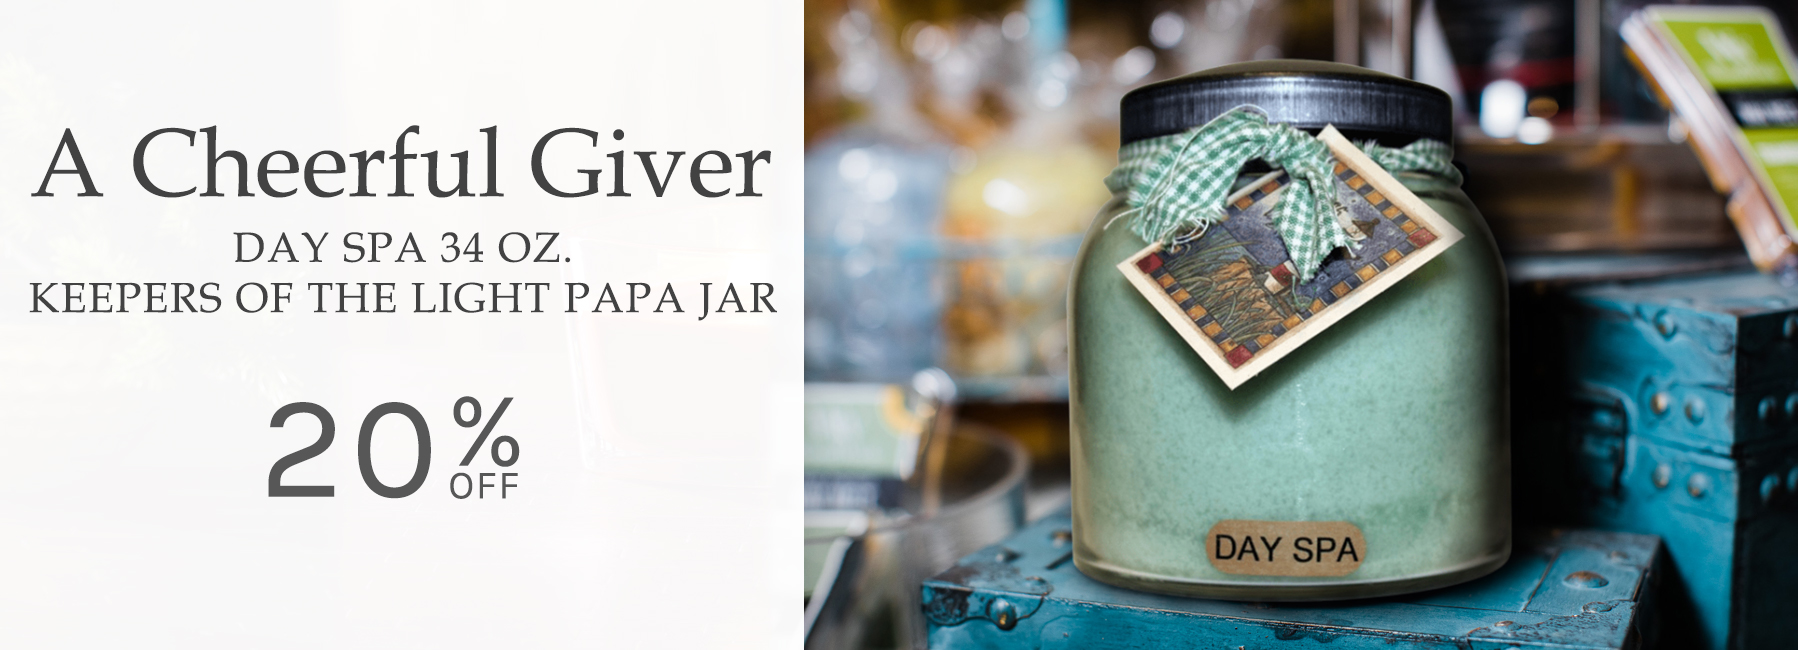 A Cheerful Giver - Day Spa 34 Ounce Keepers of the Light Papa Jar Candle - 20 Percent OFF